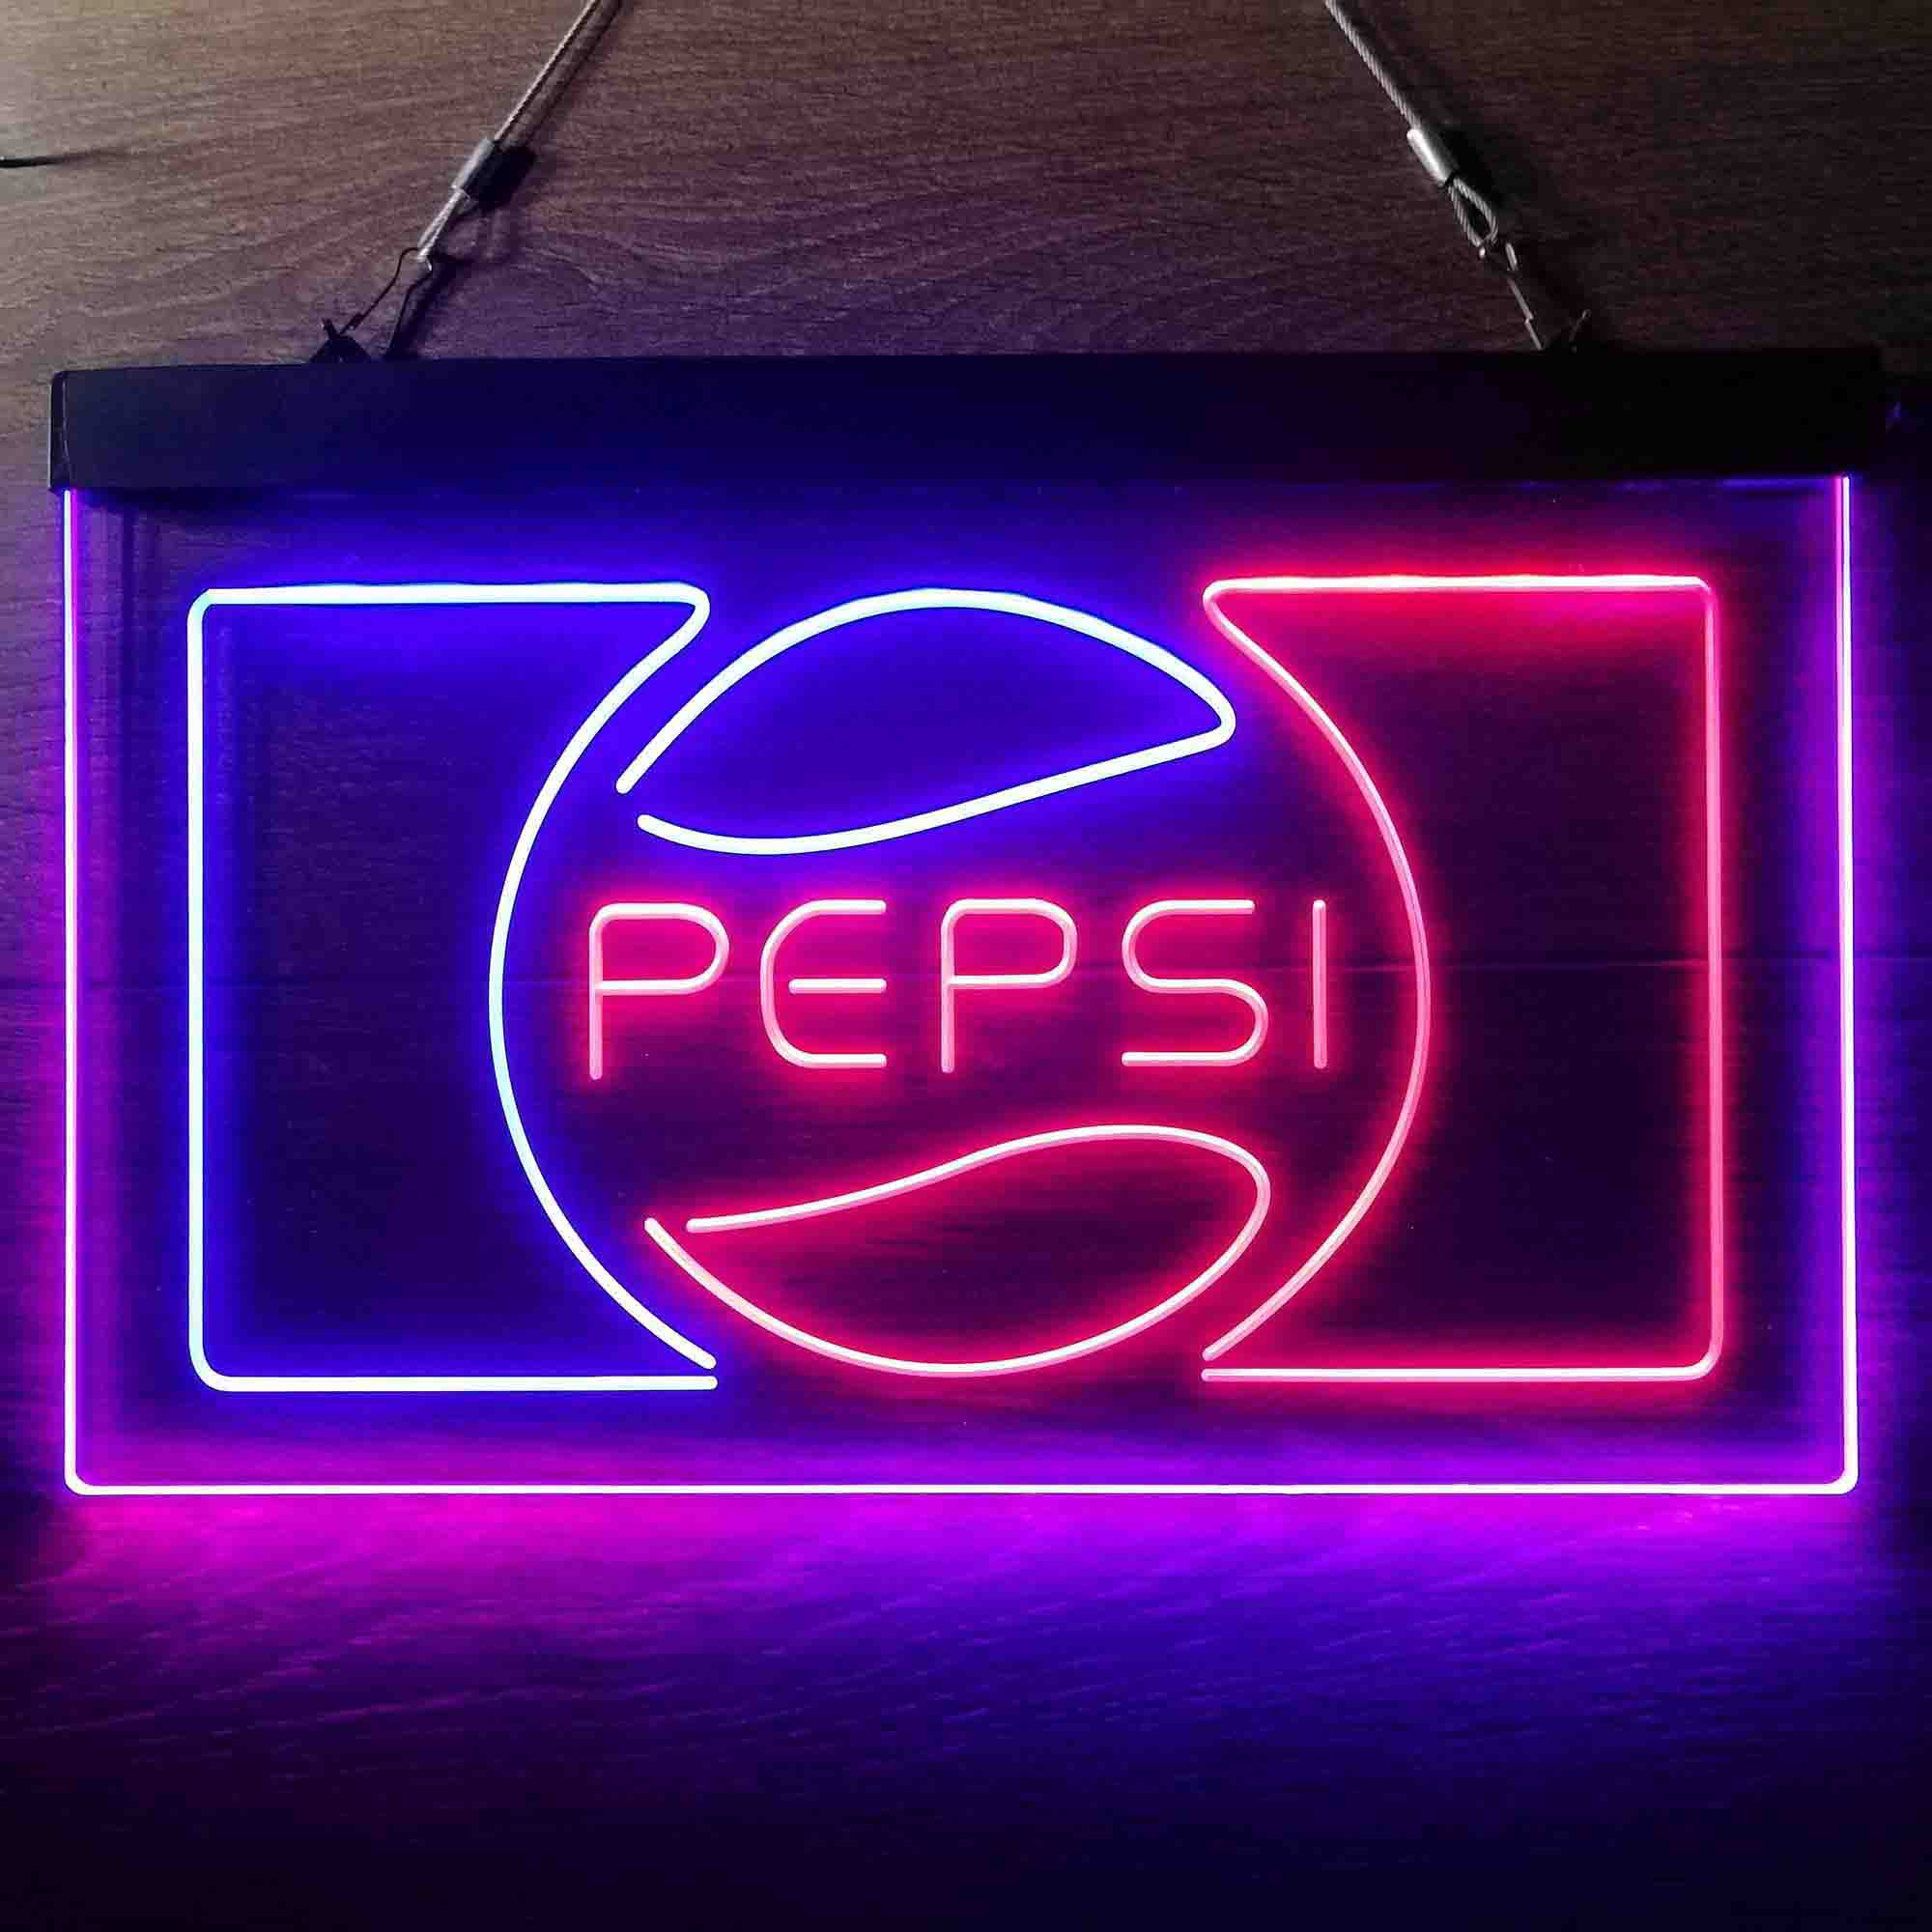 Pepsi Cola Classic Drink Neon-Like LED Sign